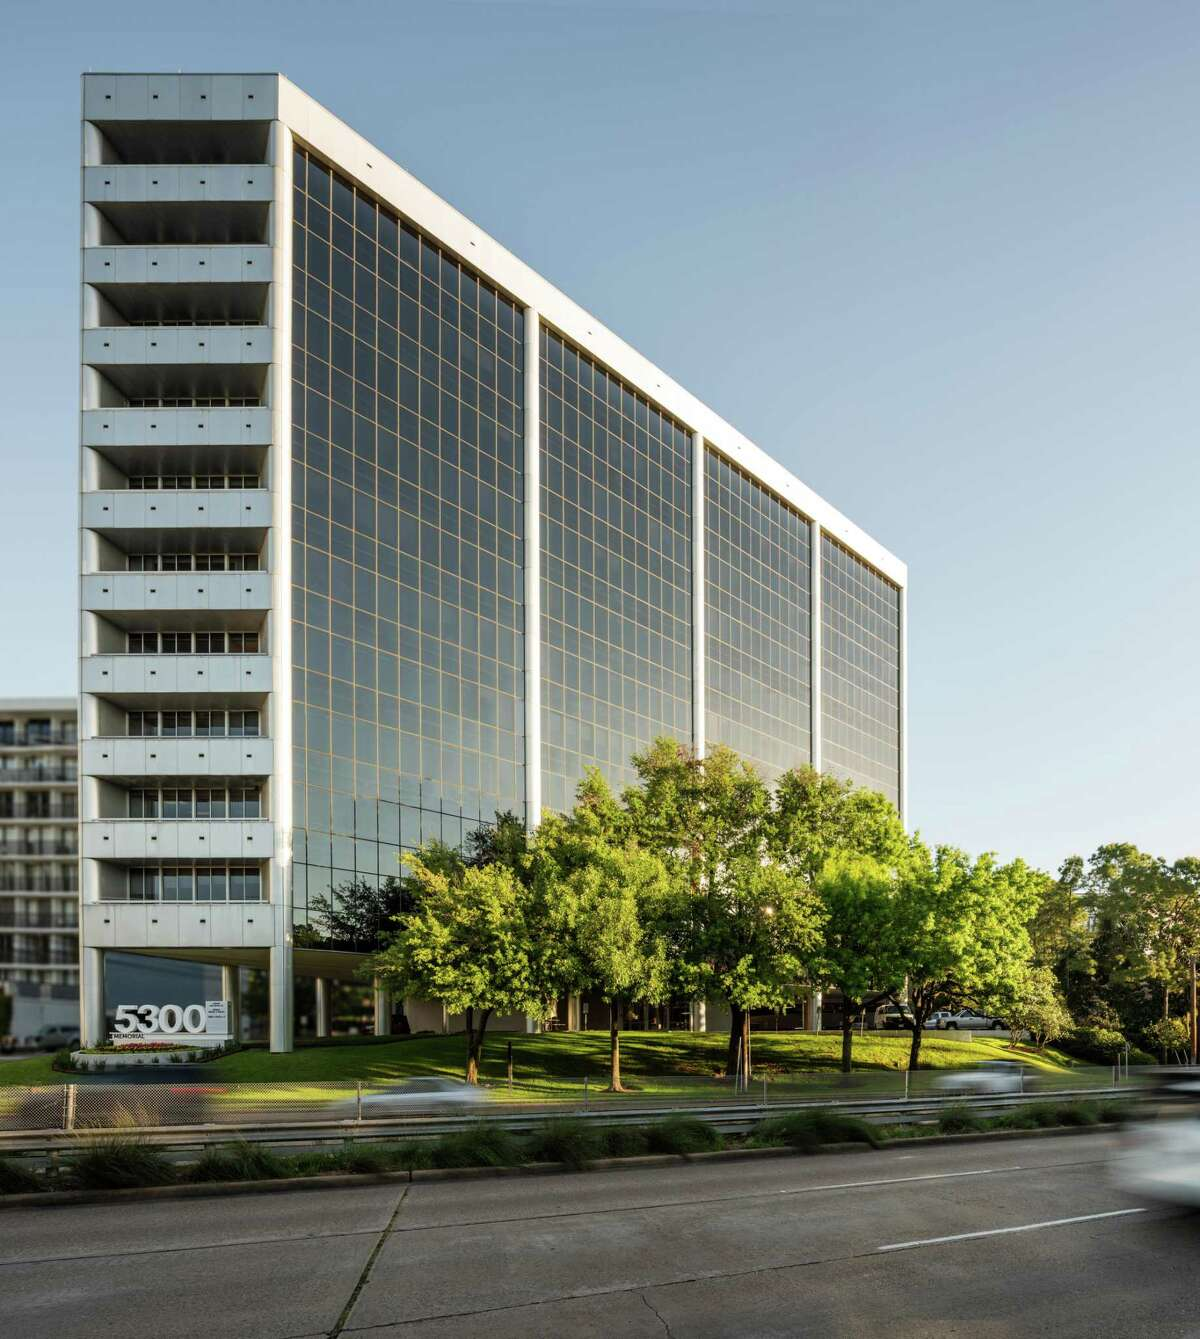 iOFFICE has leased 15,329 square feet at 5300 Memorial Drive.